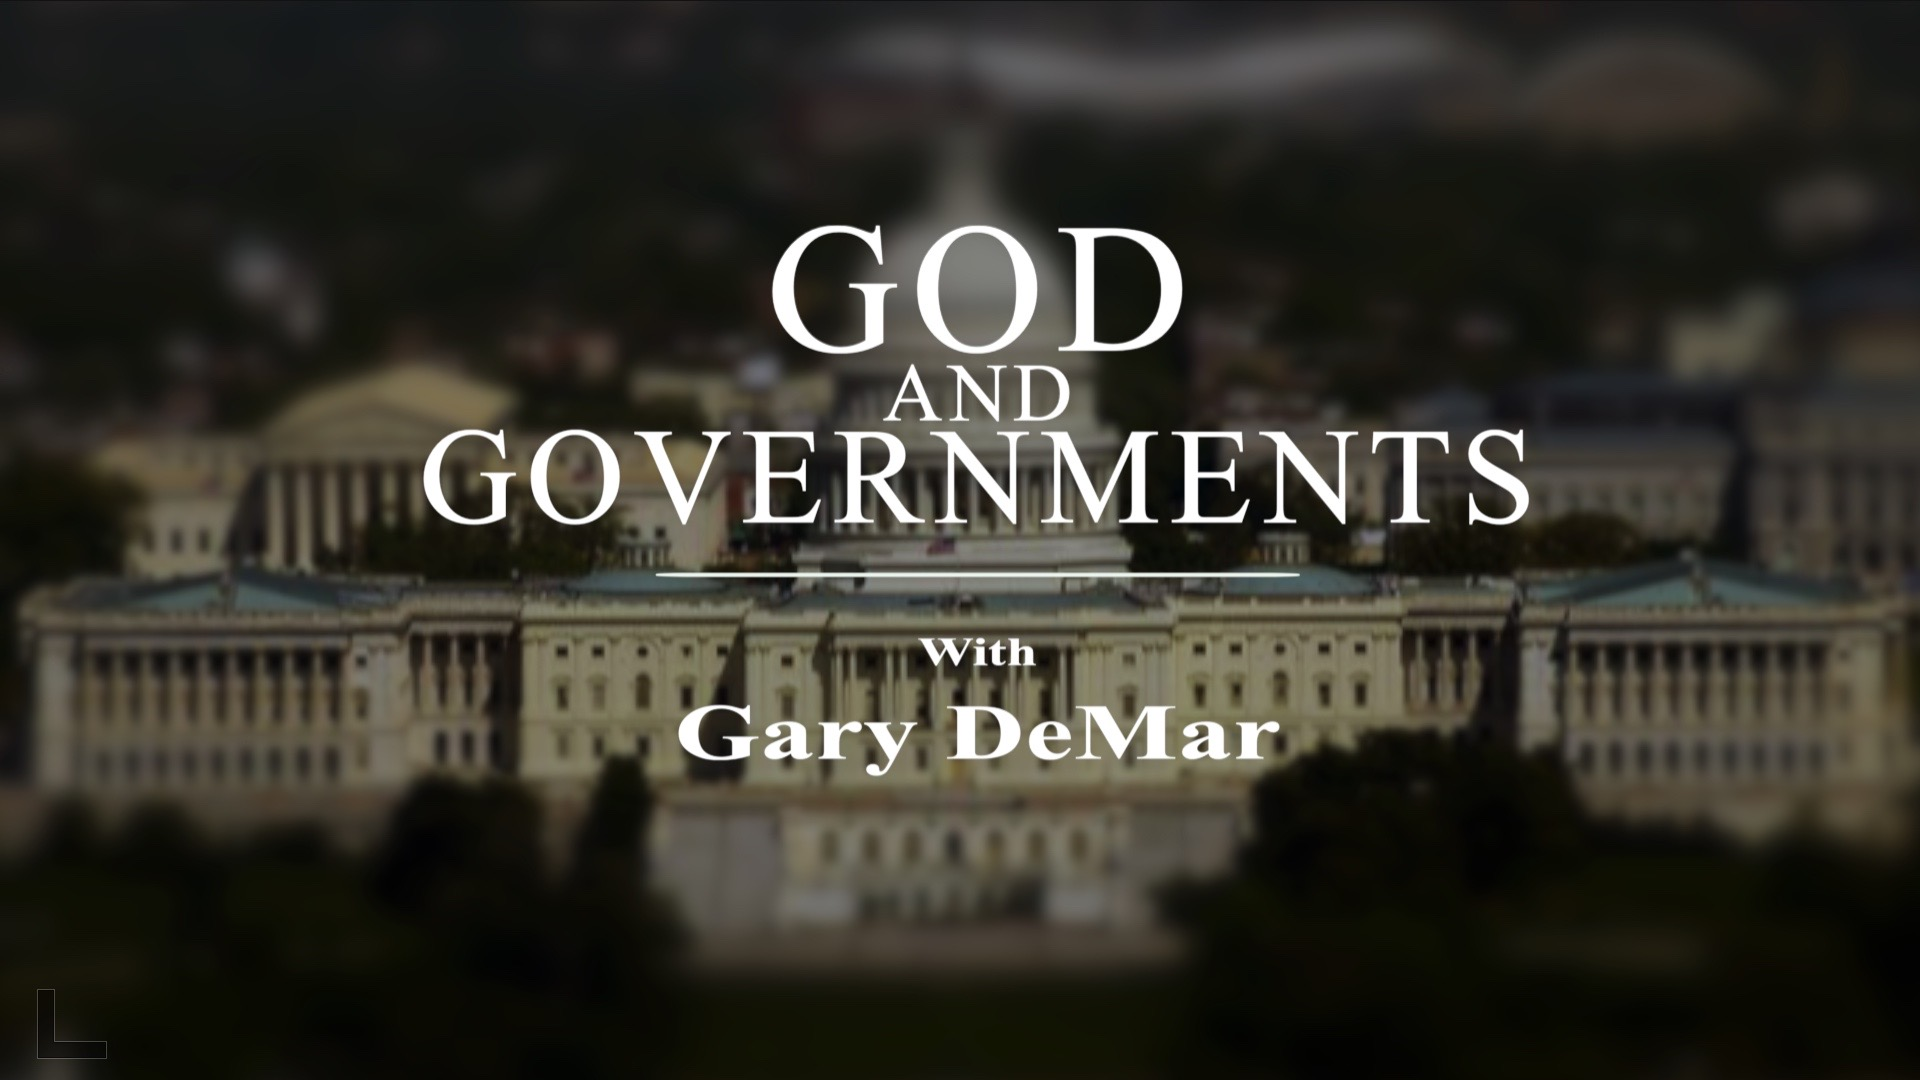 God And Governments with Gary DeMar